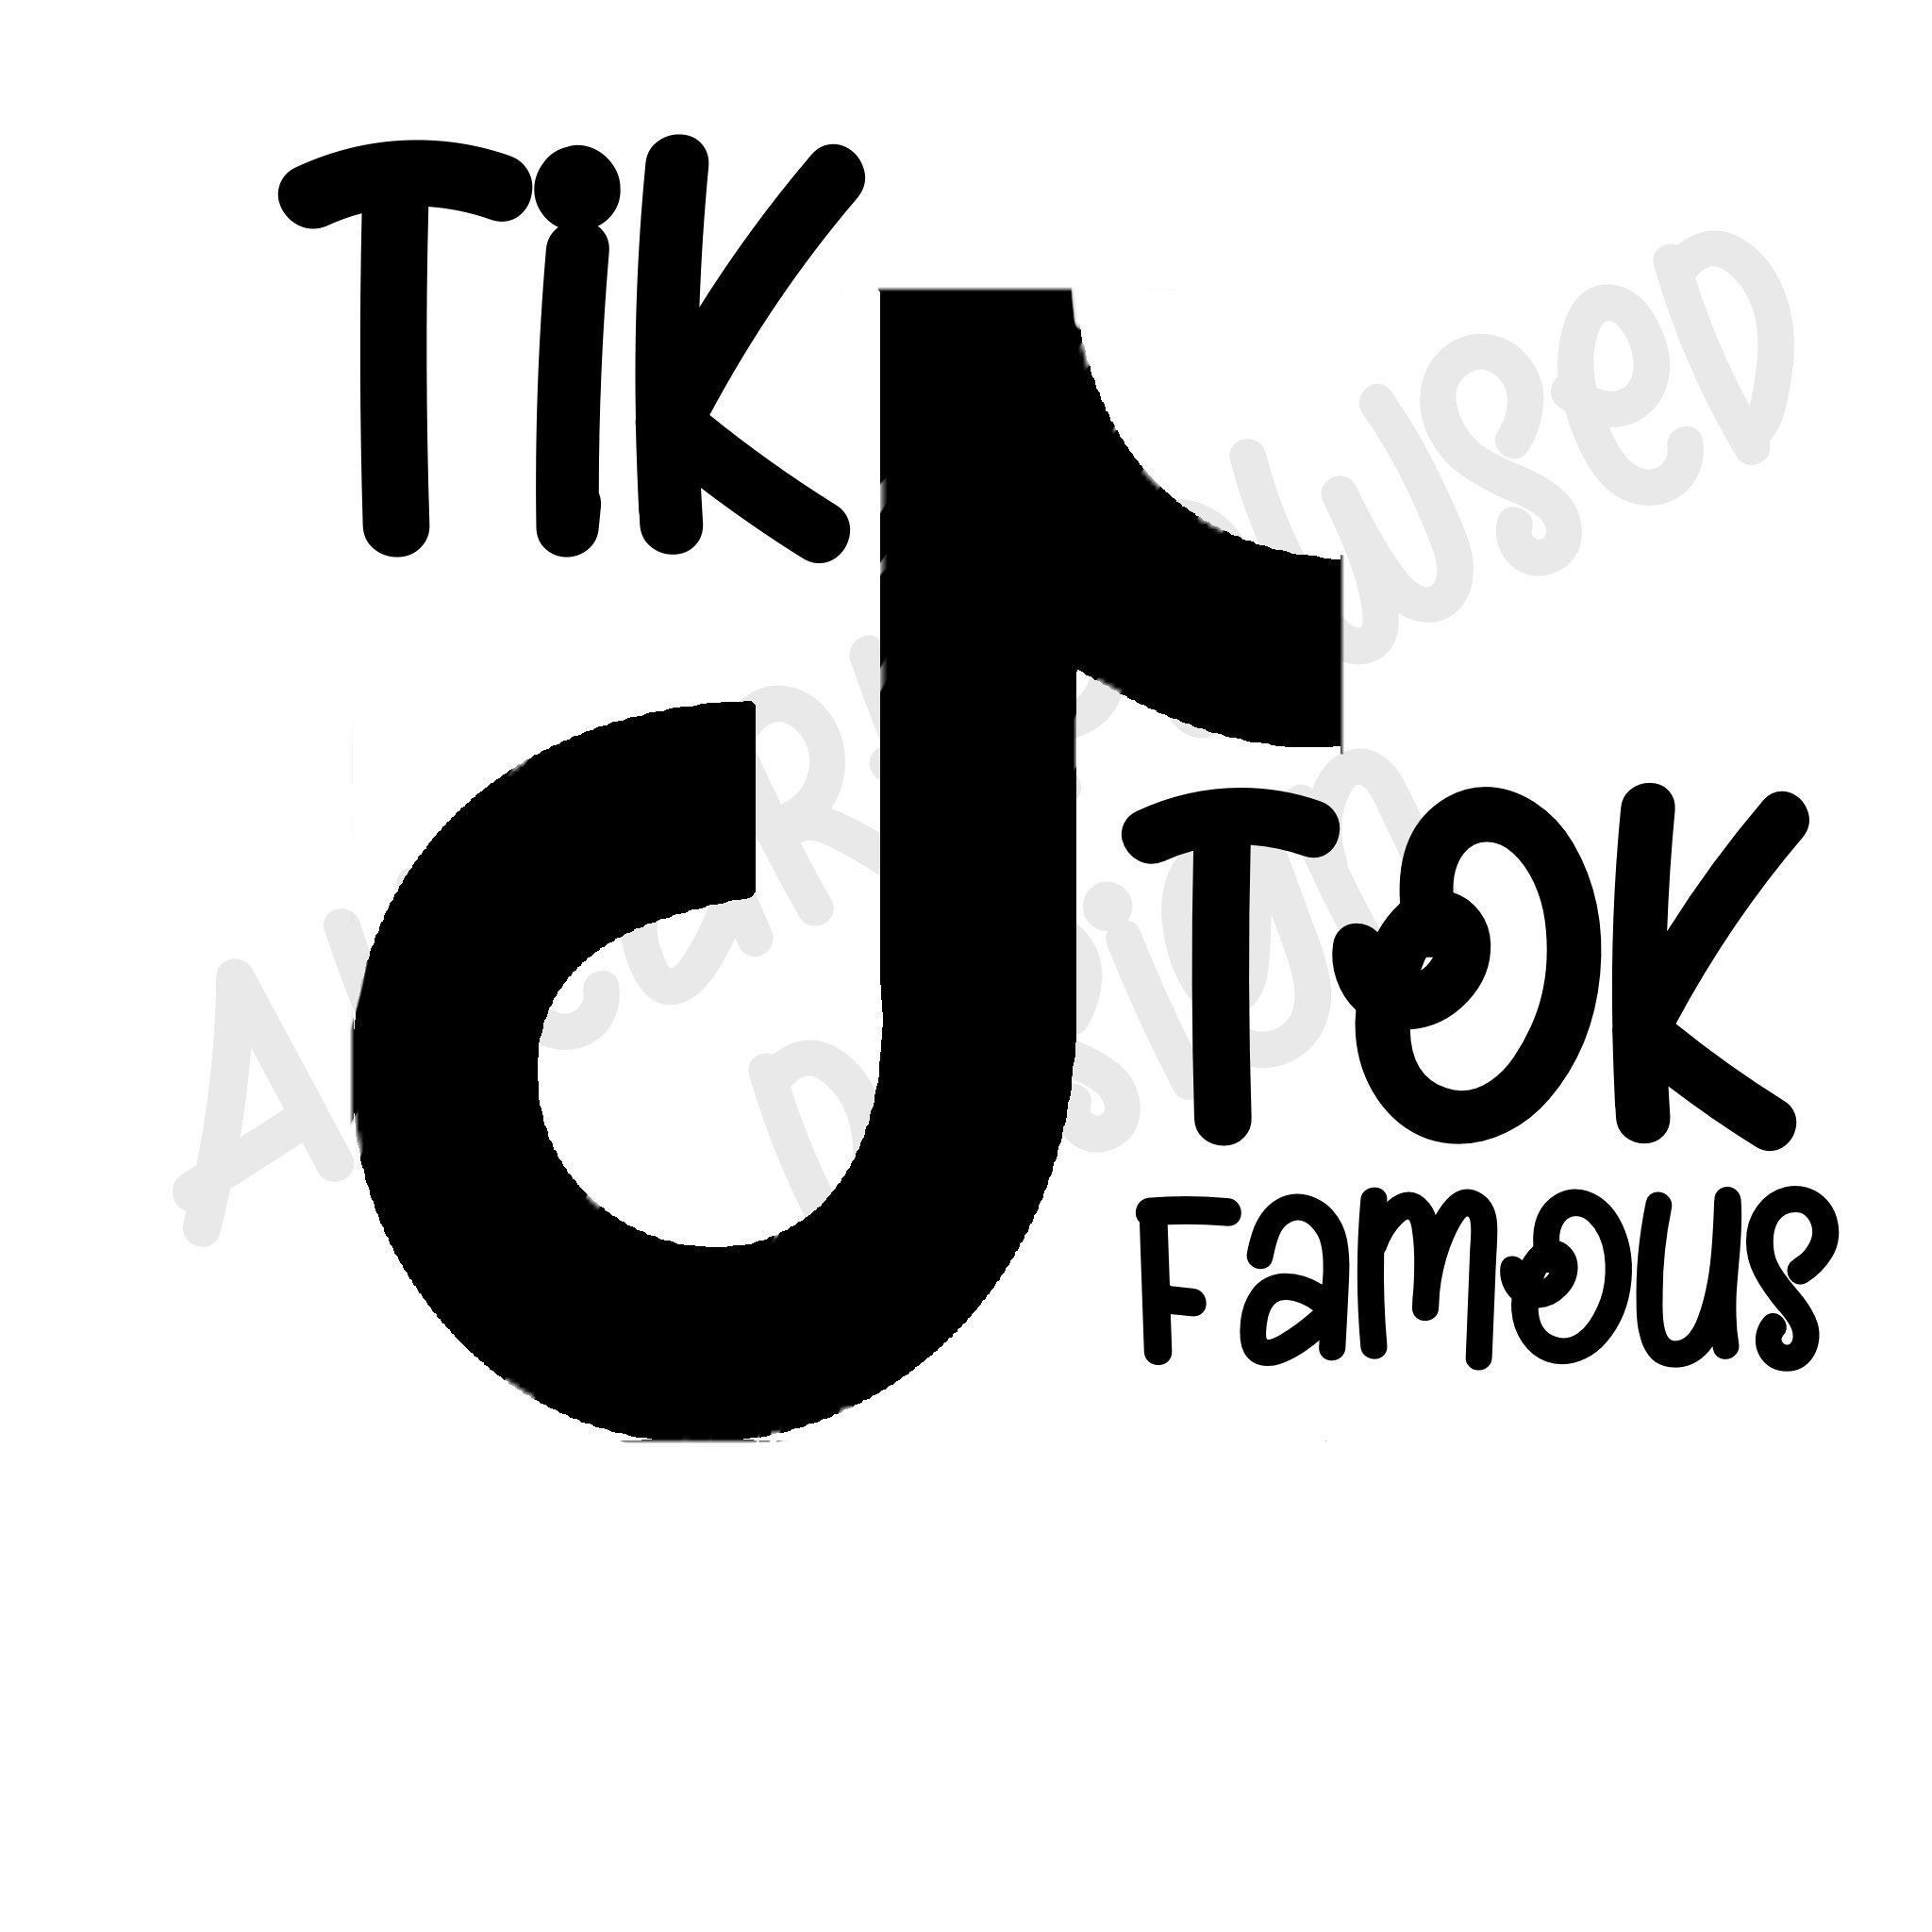 Tik Tok Famous SVG Etsy in 2020 Tok, Svg, Famous